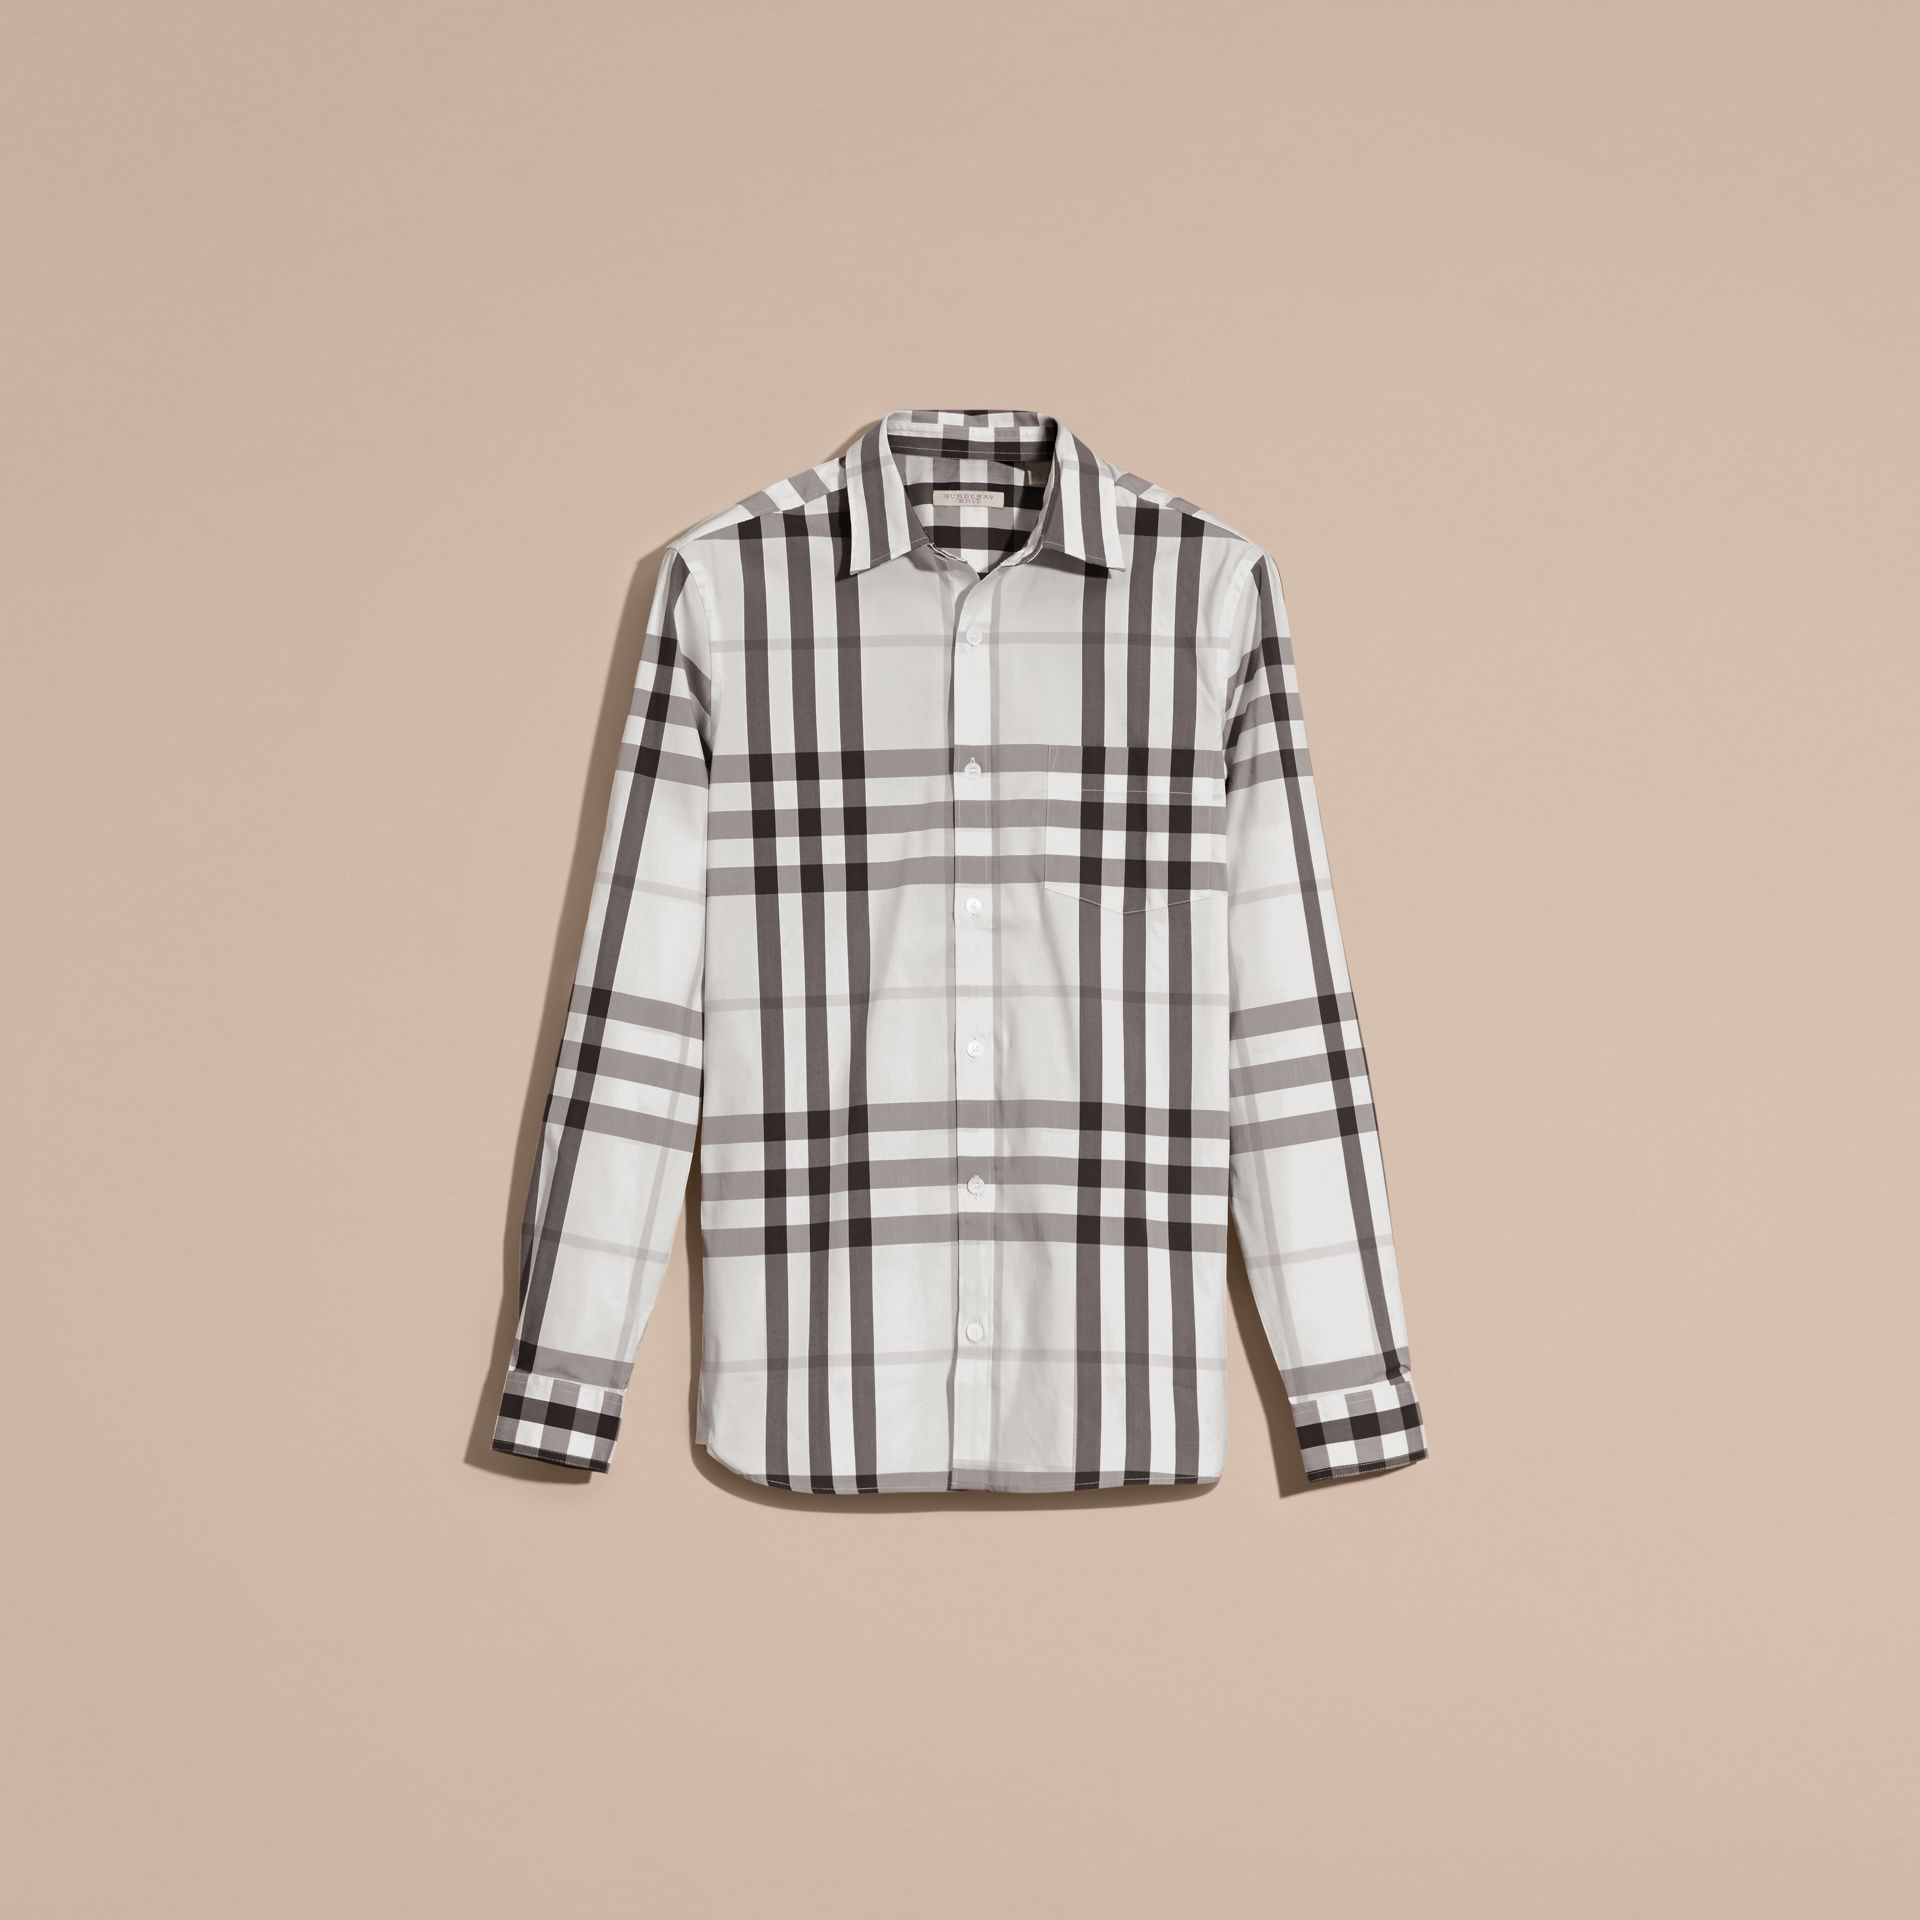 Natural white Check Stretch Cotton Shirt Natural White - gallery image 2